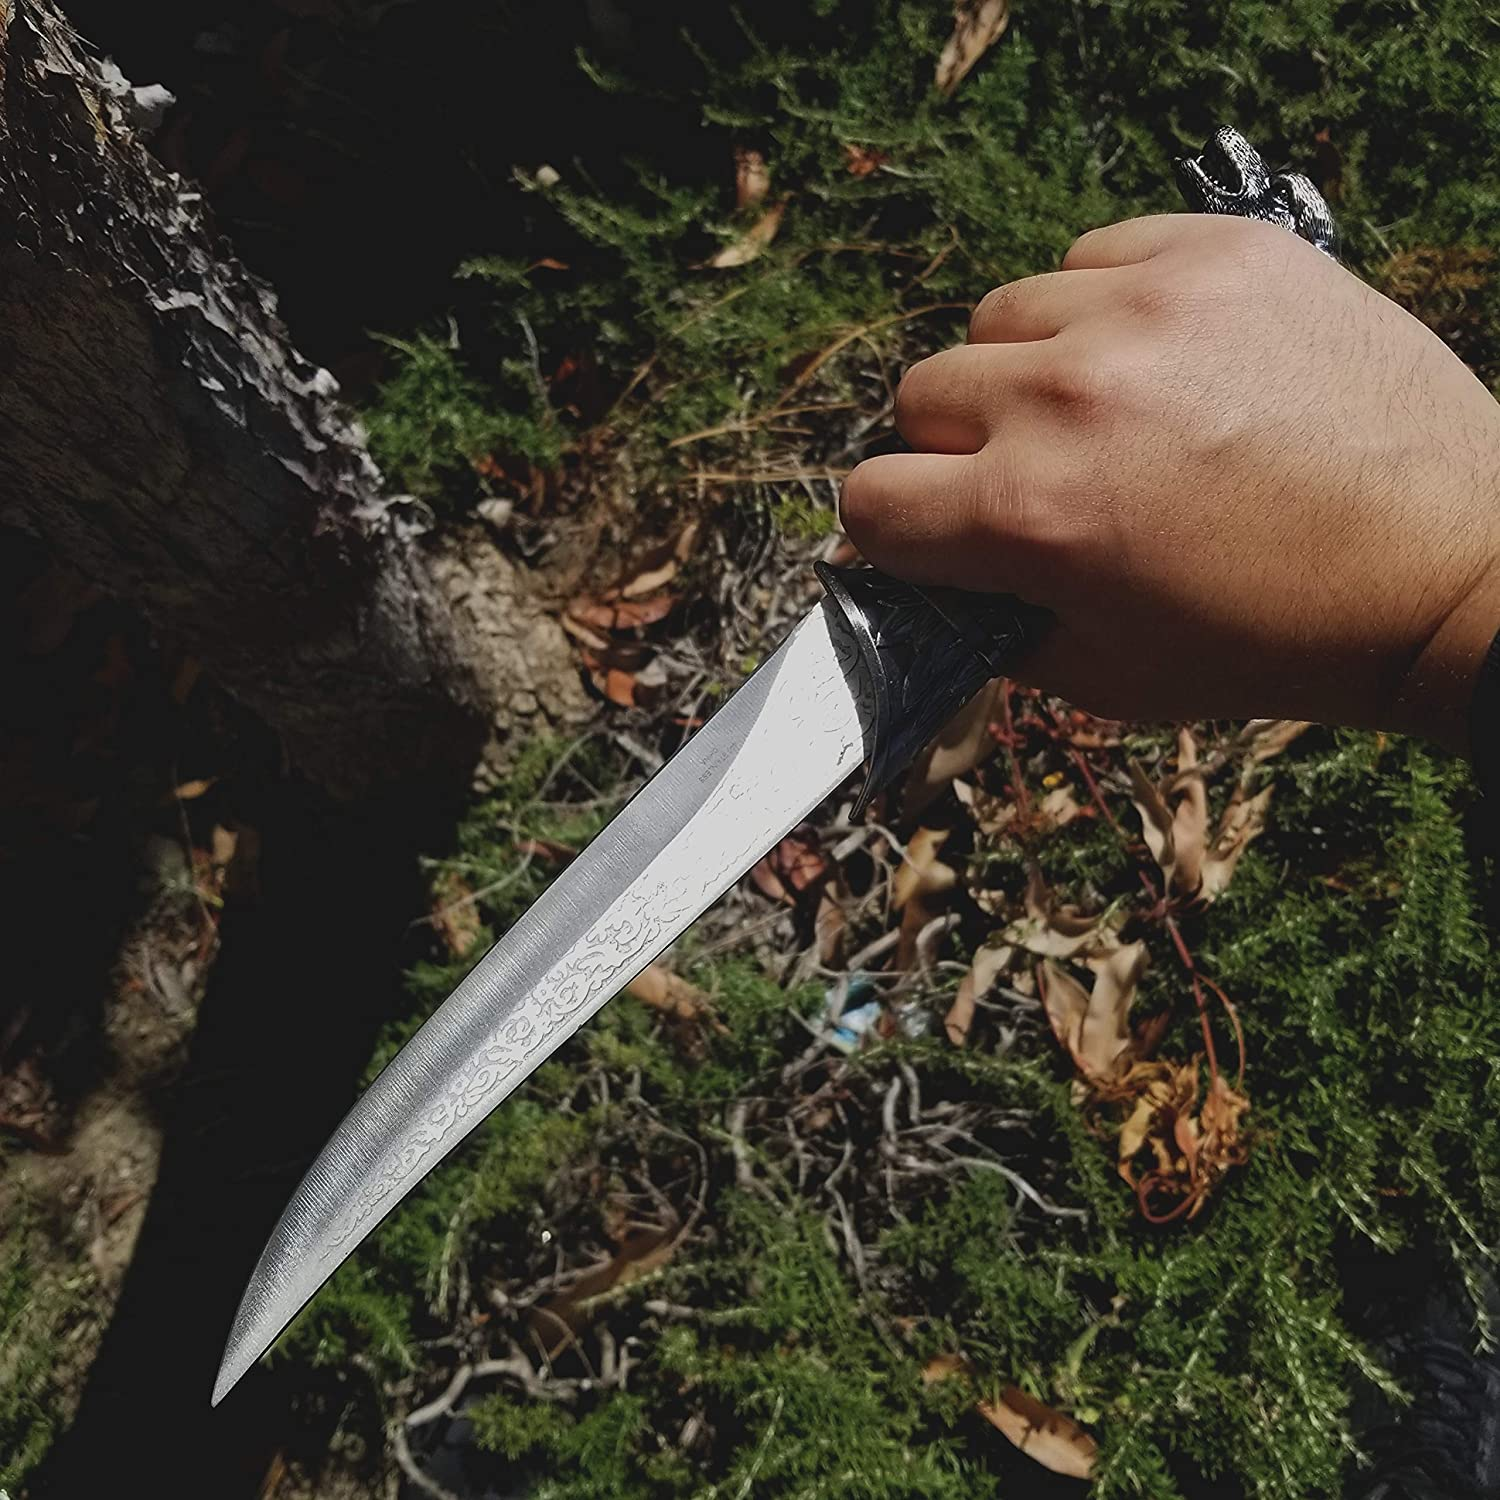 for Collection Gift 1sword Fantasy Collection: Wild Anime Fixed Blade Dagger with Etched Blade Camping